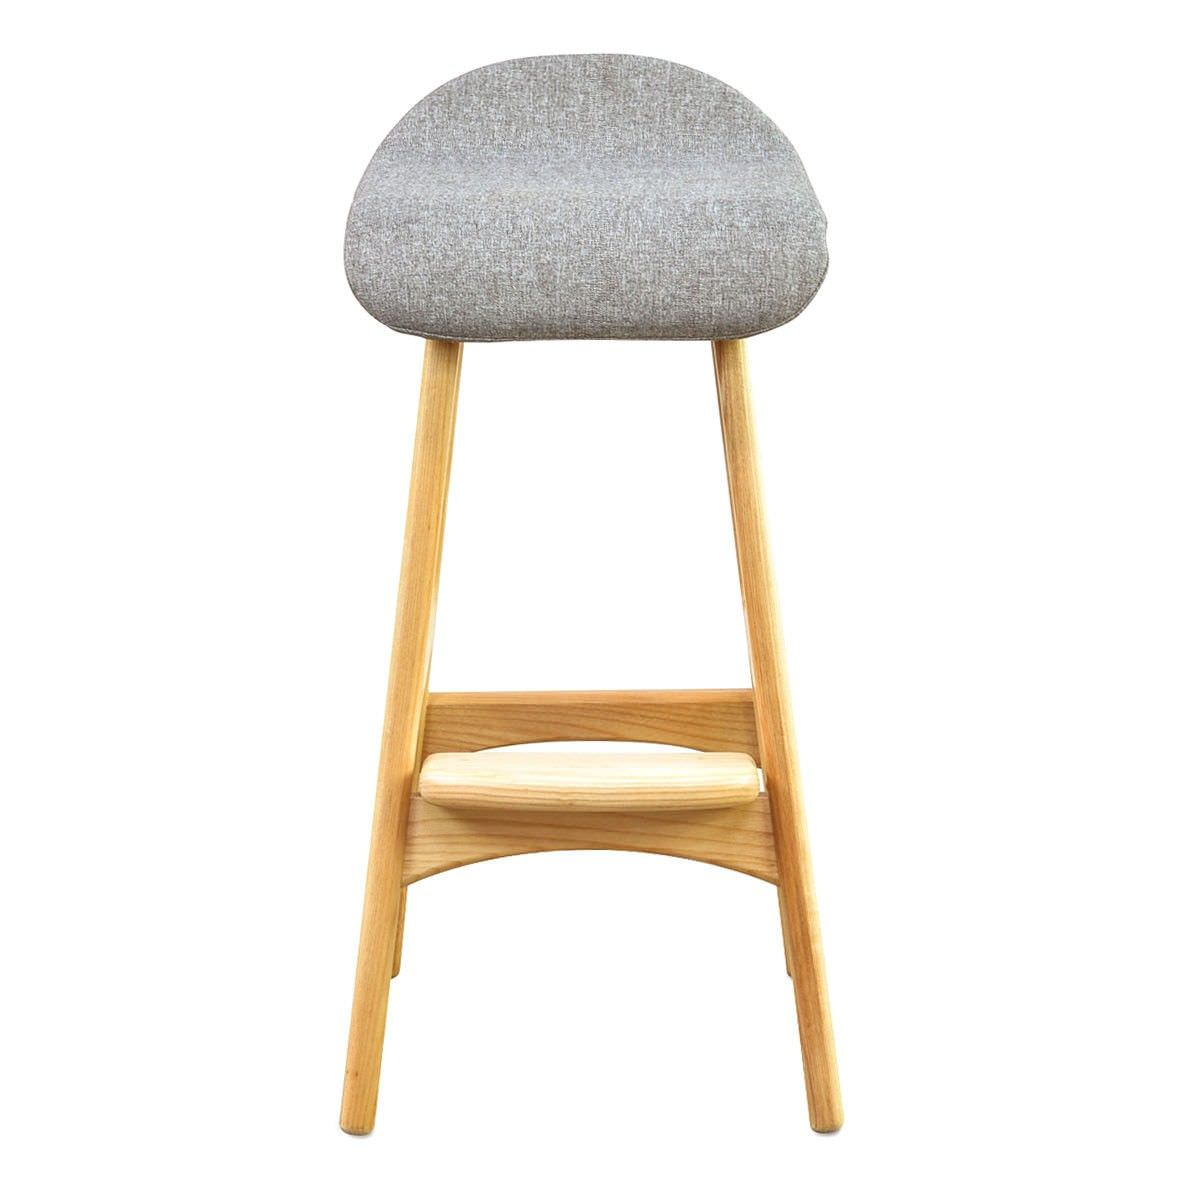 Replica Erik Buch Counter Stool with Fabric Seat, Natural / Grey